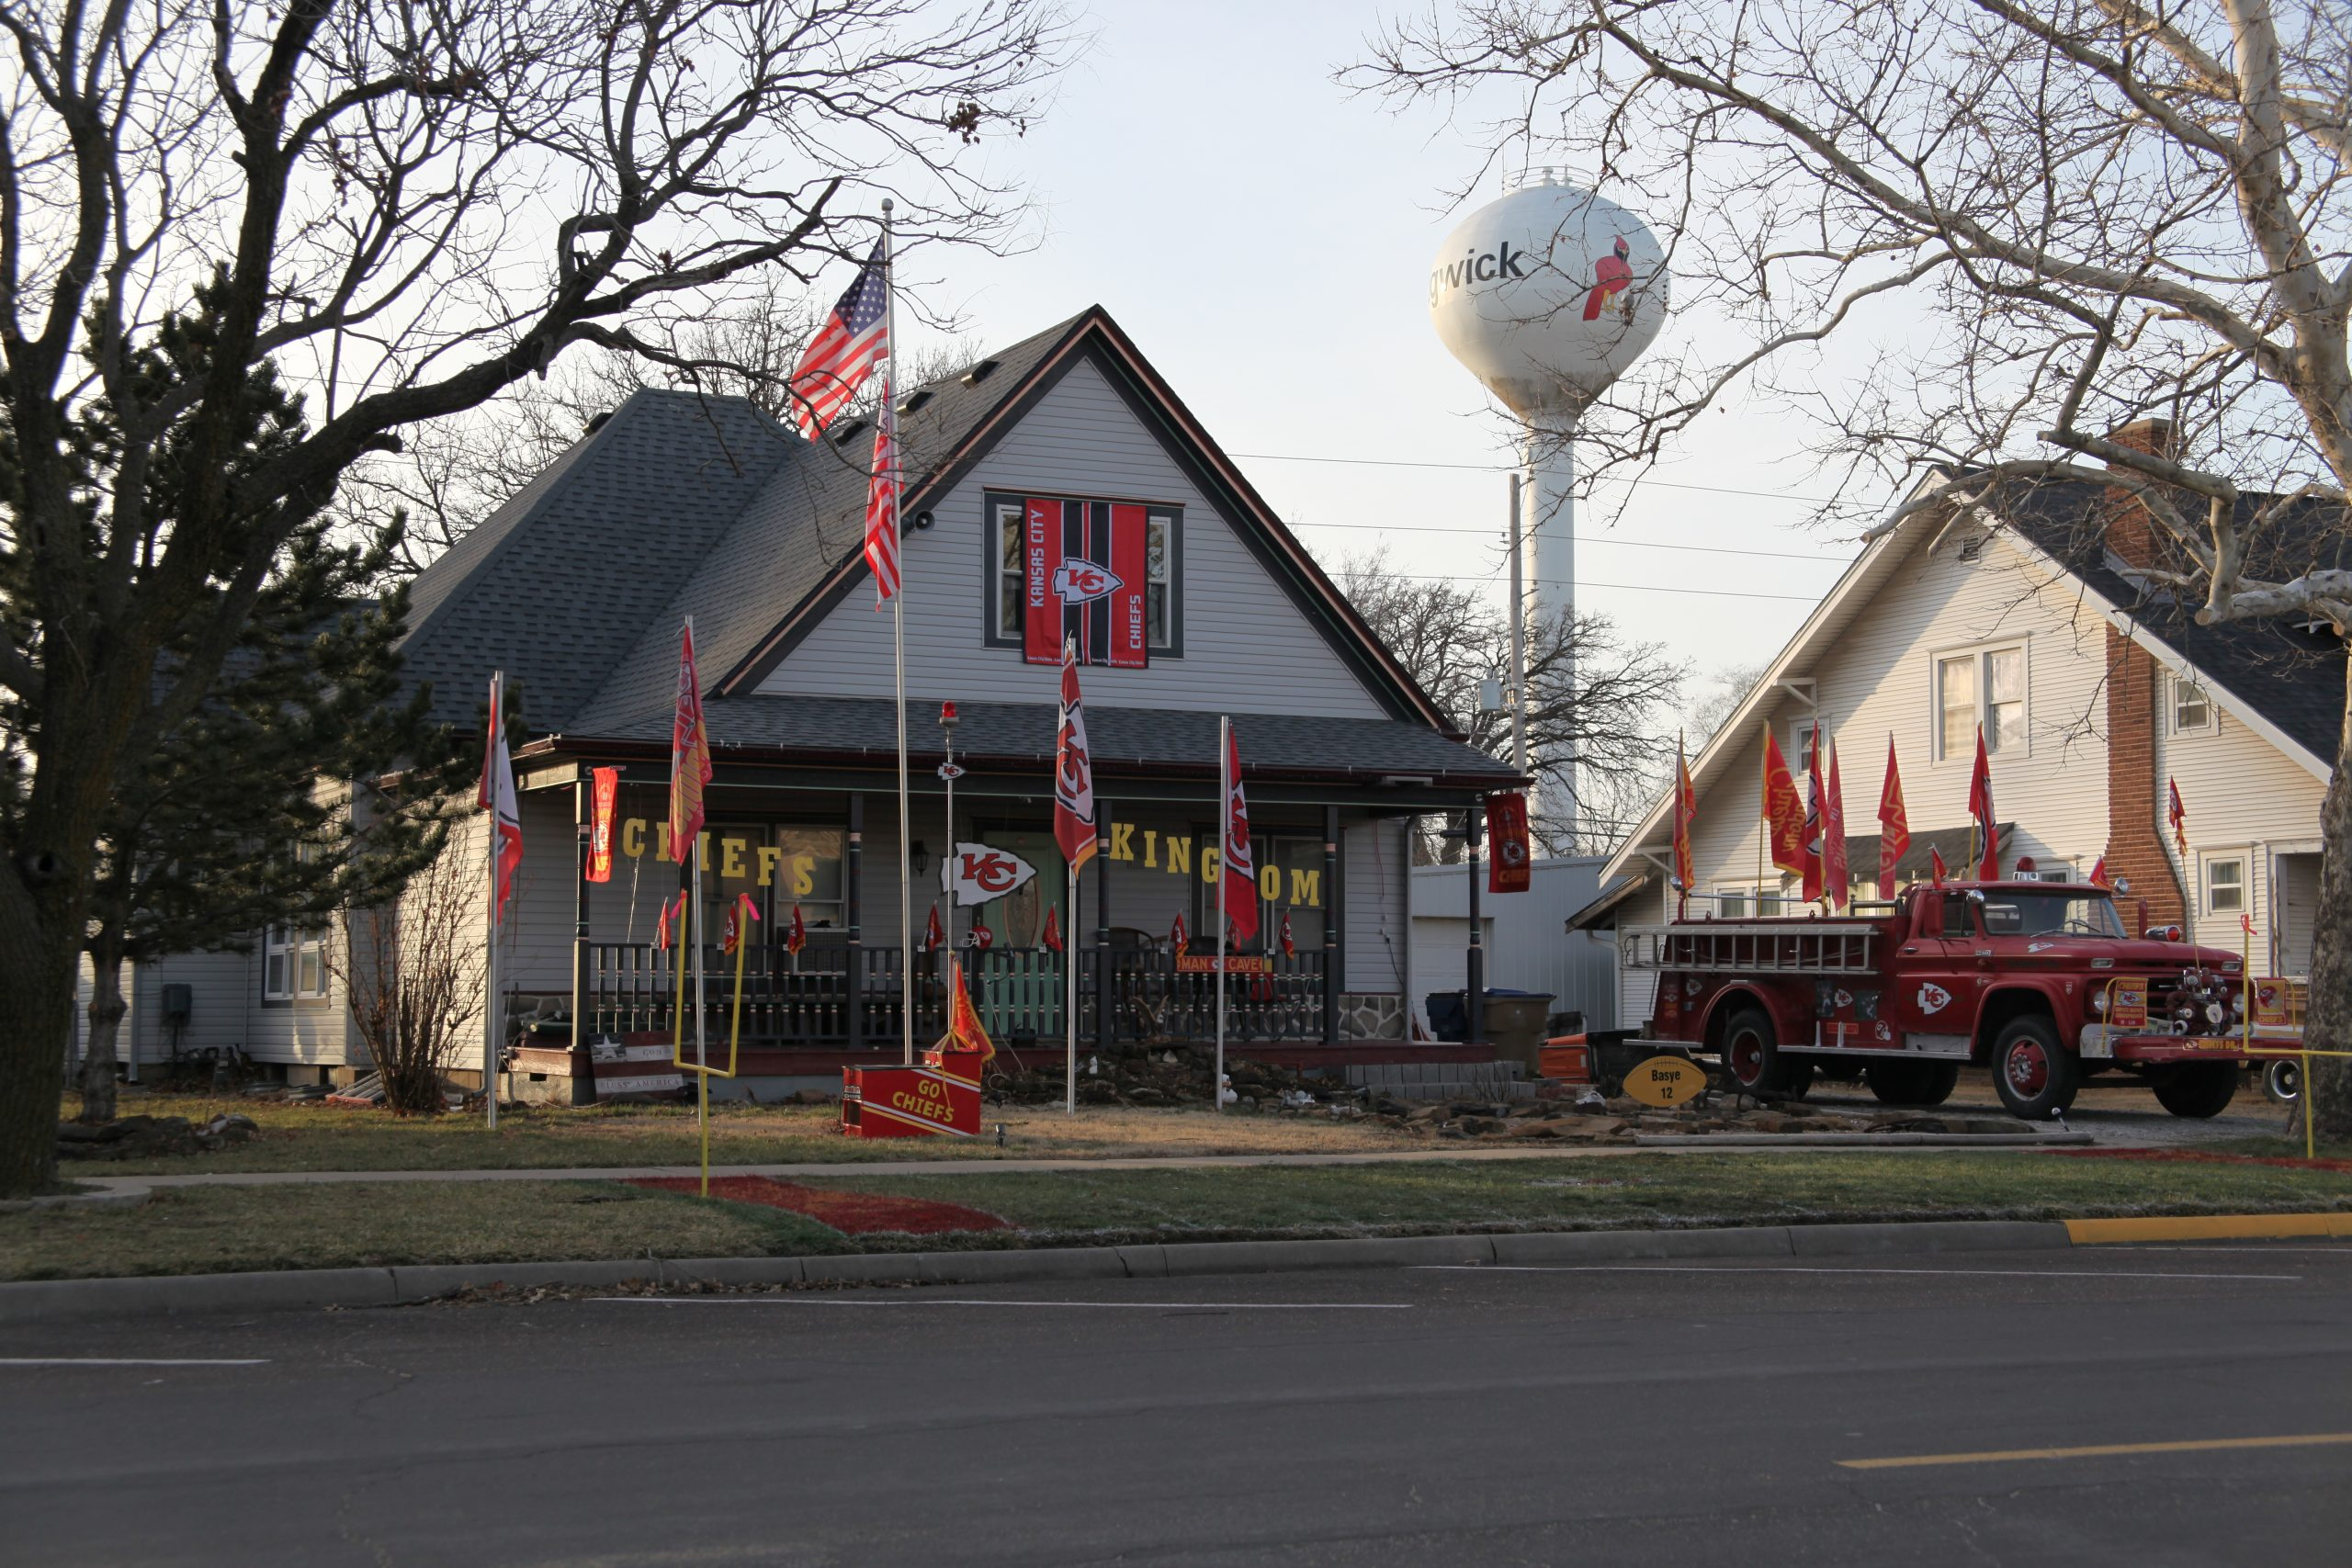 Sedgwick yard shows off passion for Chiefs